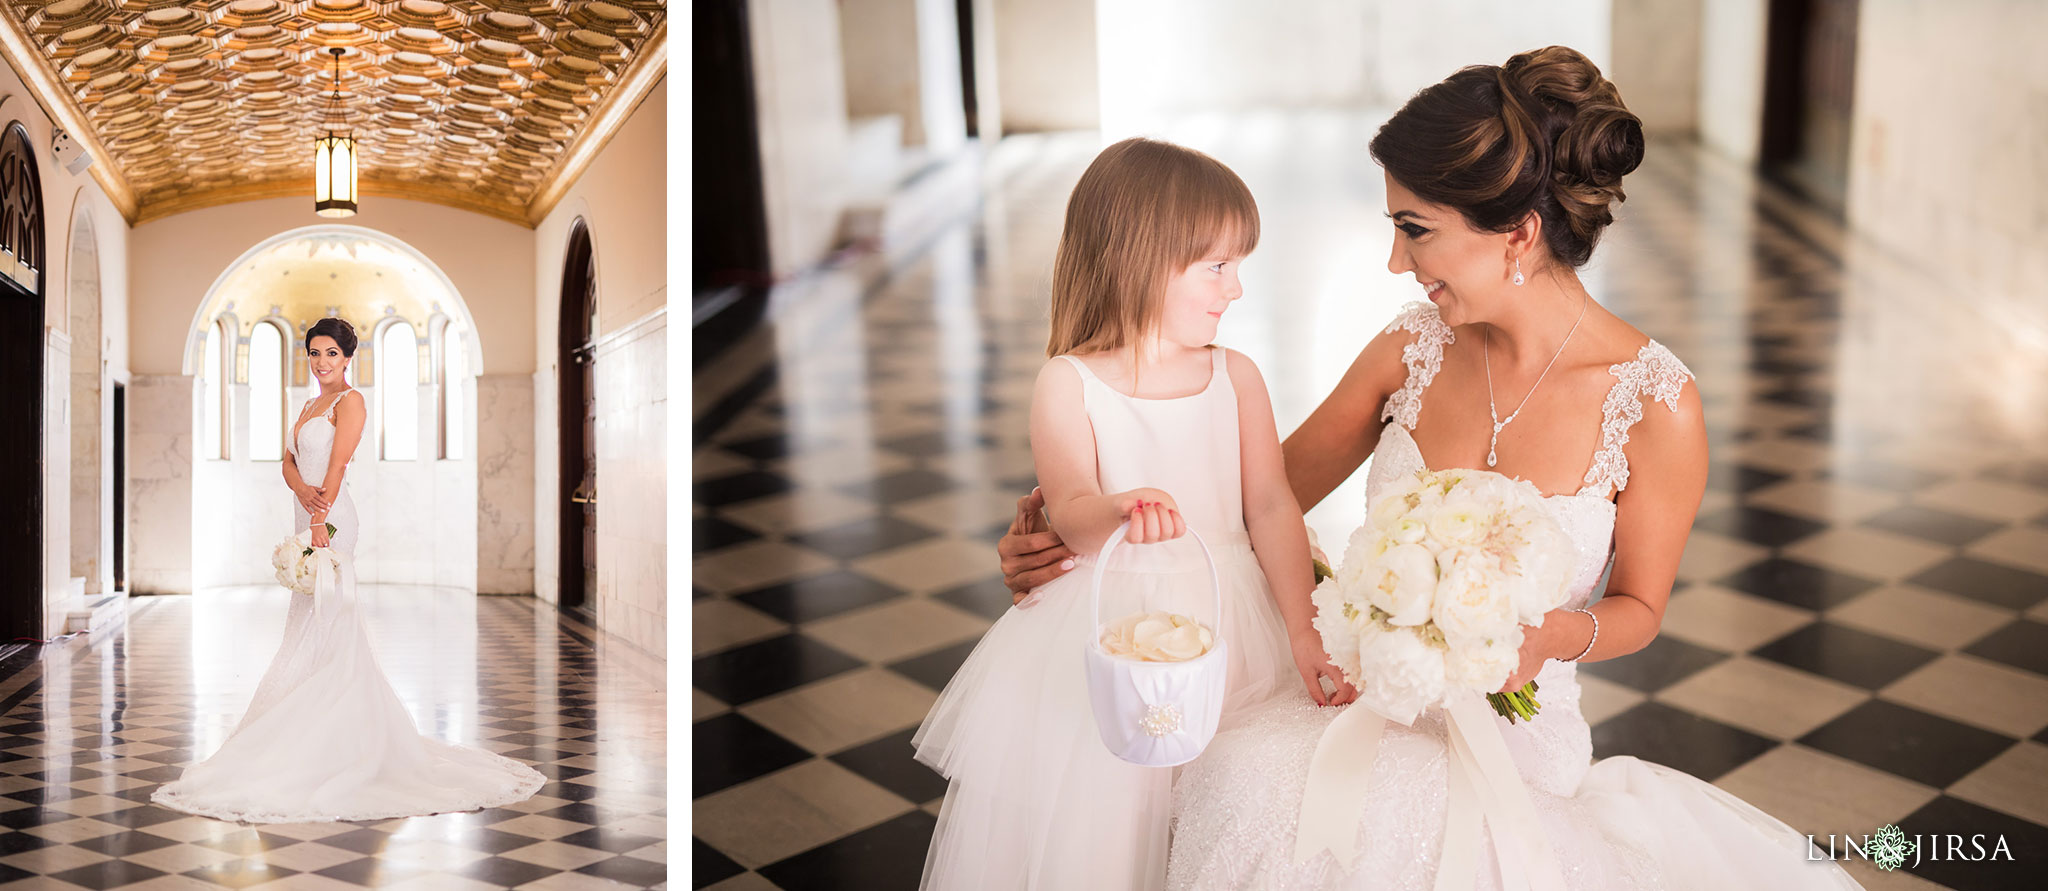 005 st vibiana cathedral los angeles wedding photography